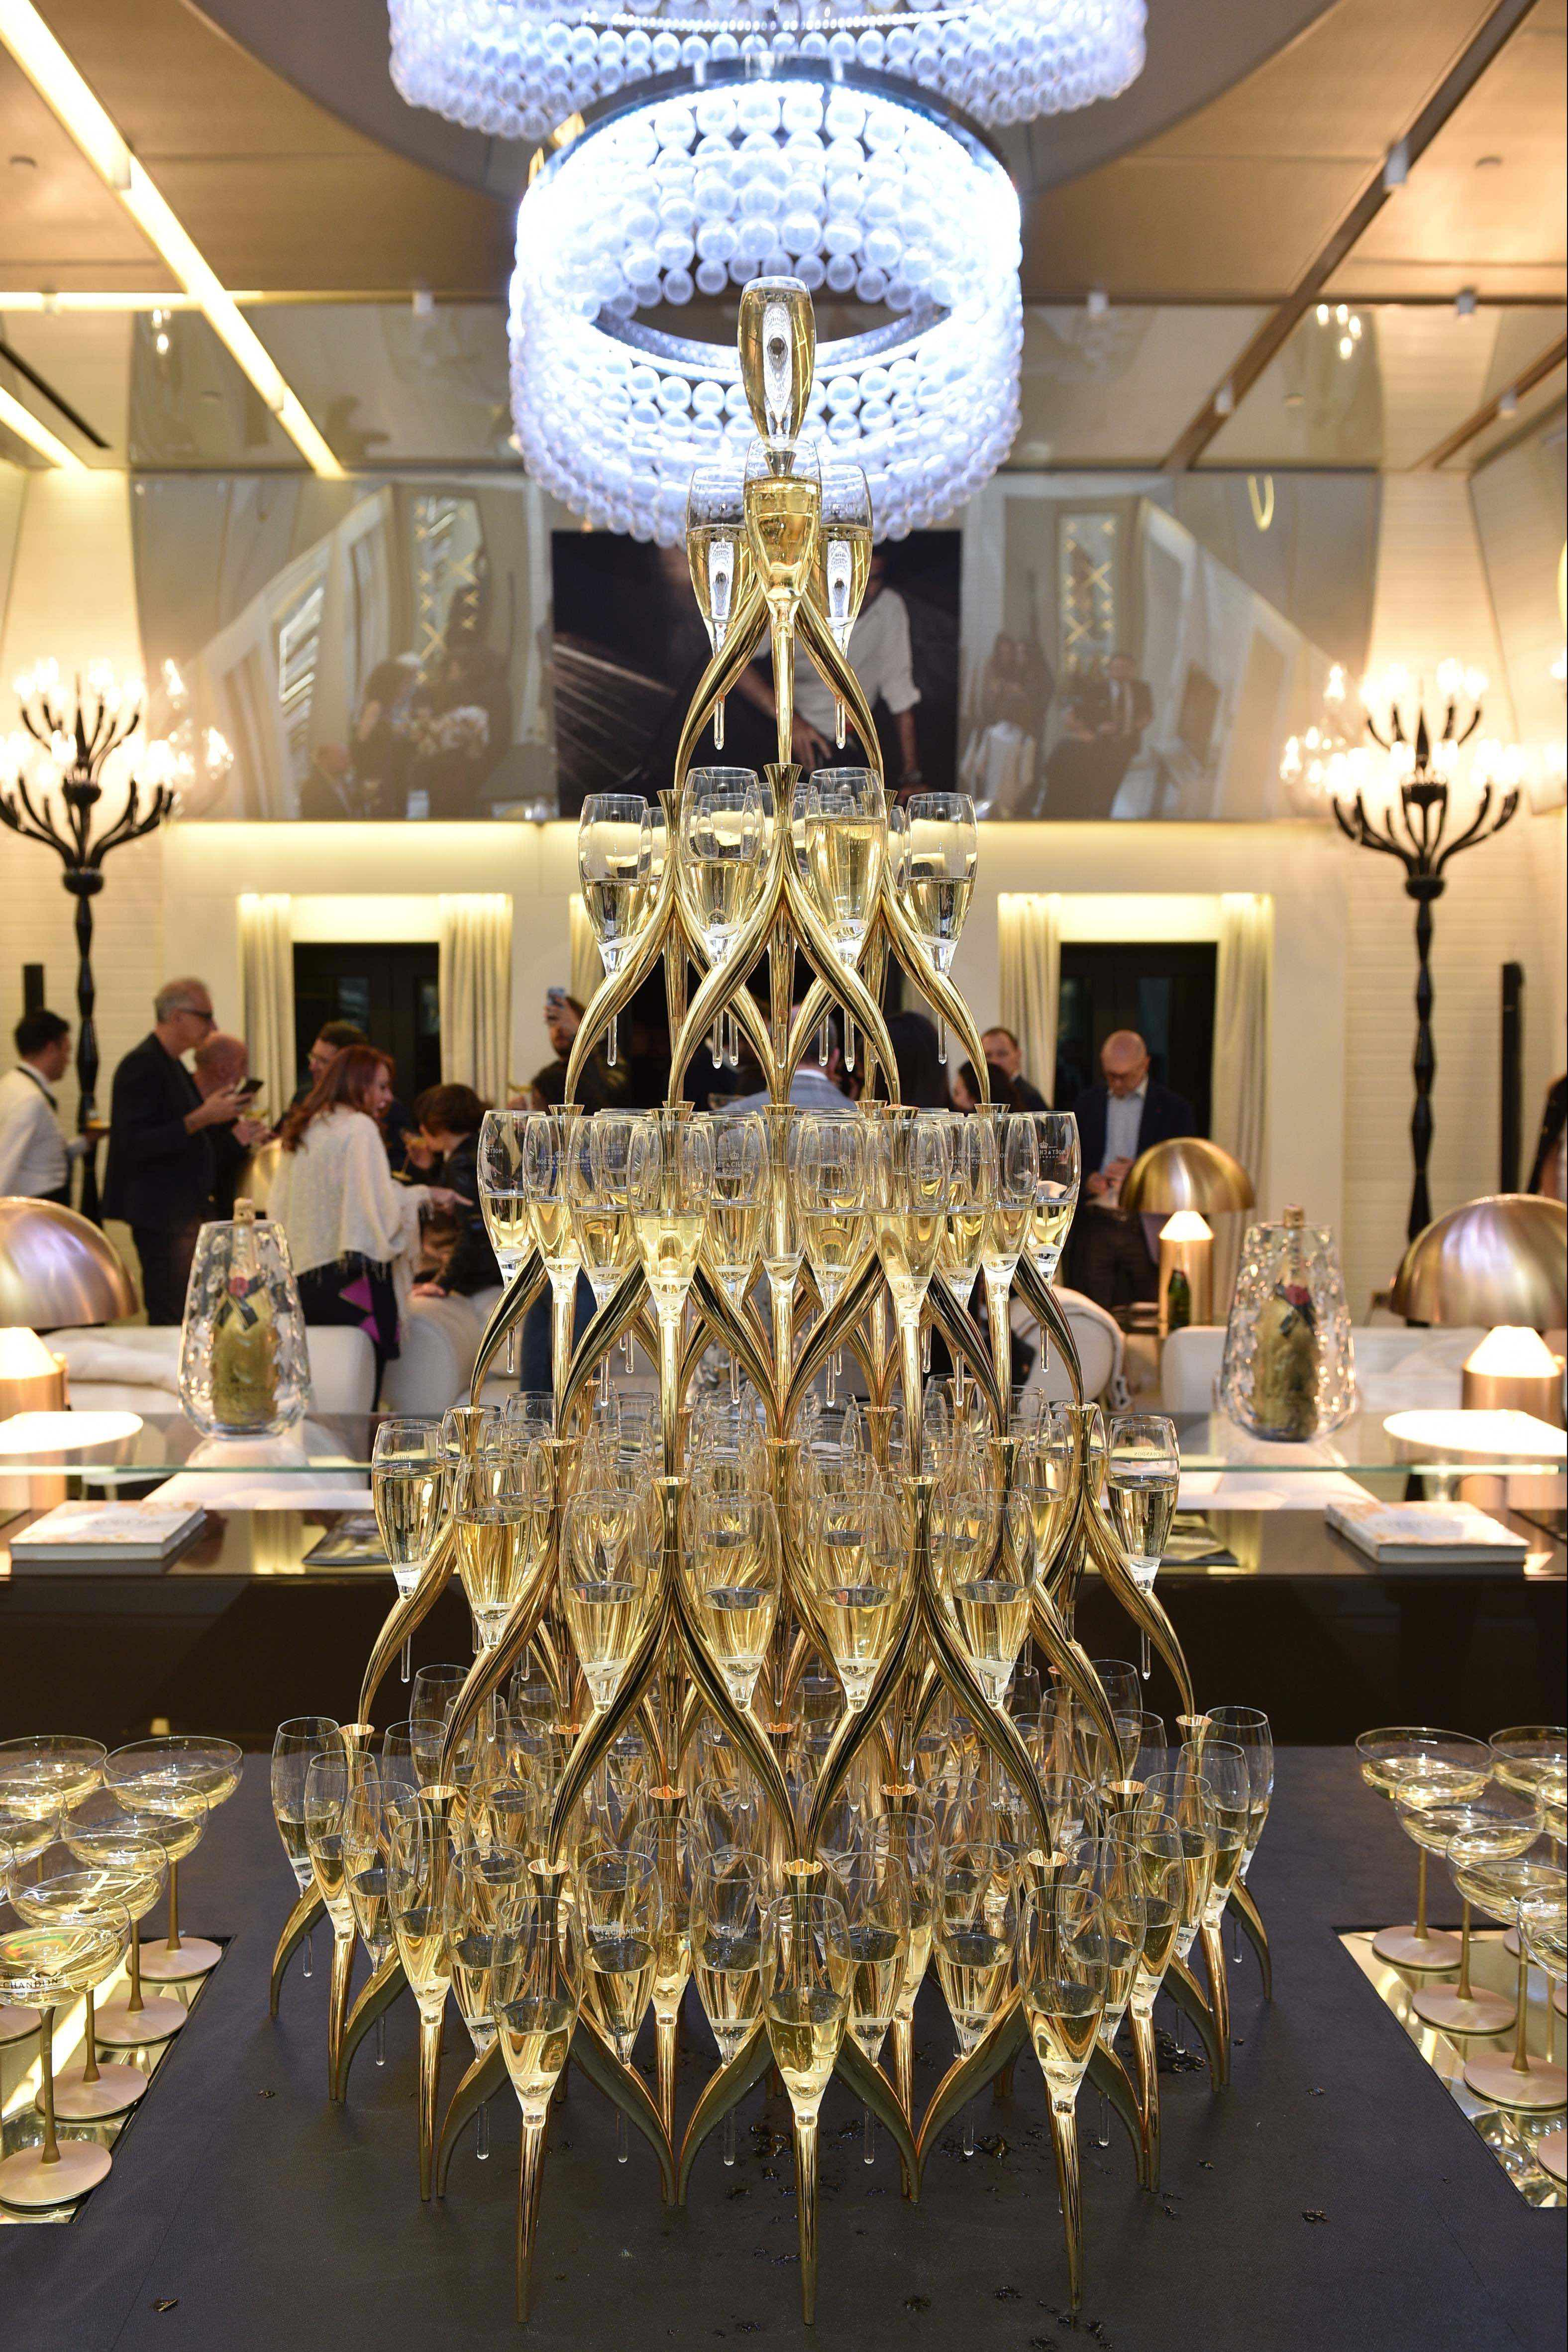 The champagne icon for the best moments of life